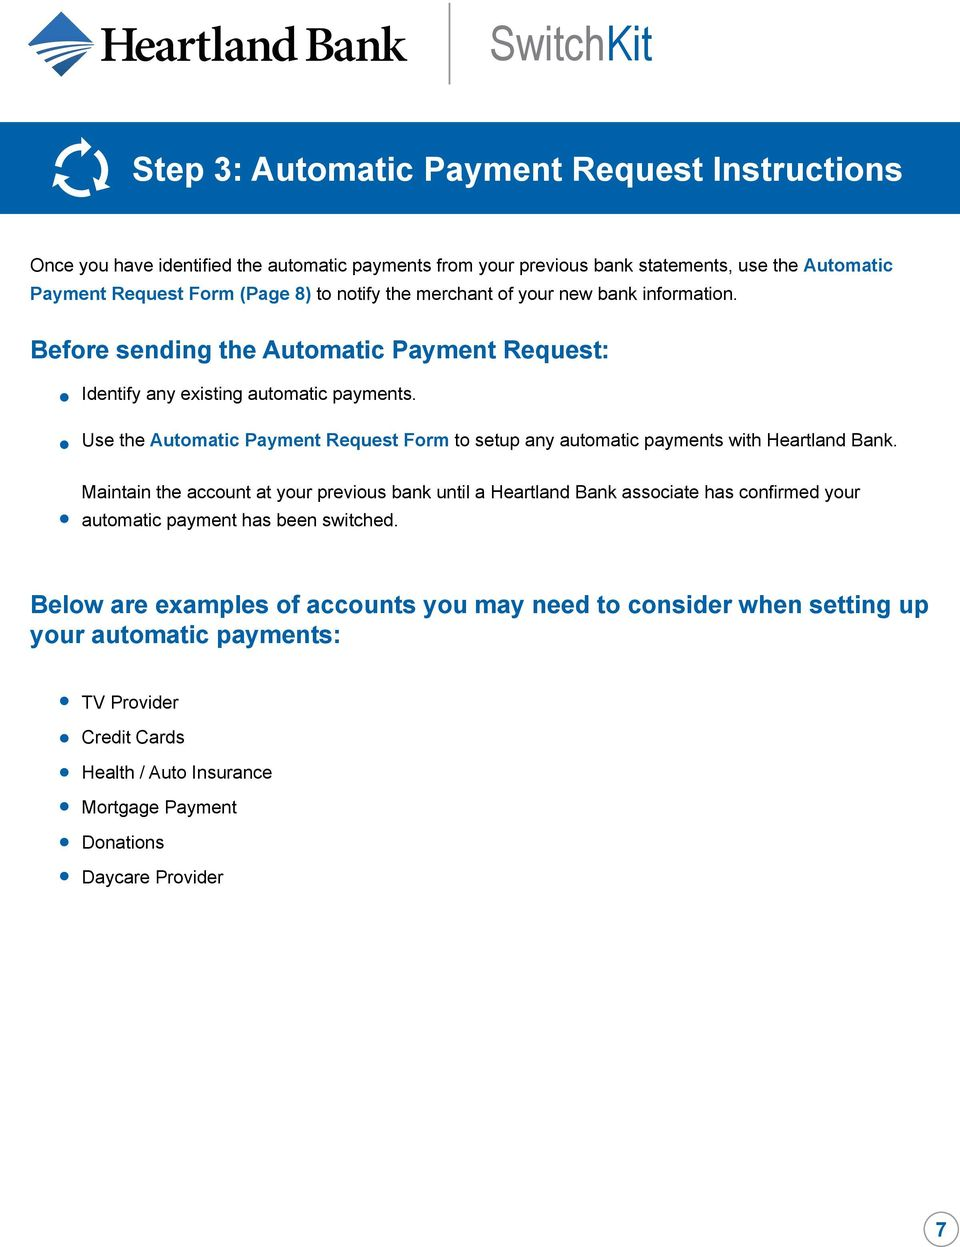 Use the Automatic Payment Request Form to setup any automatic payments with Heartland Bank.